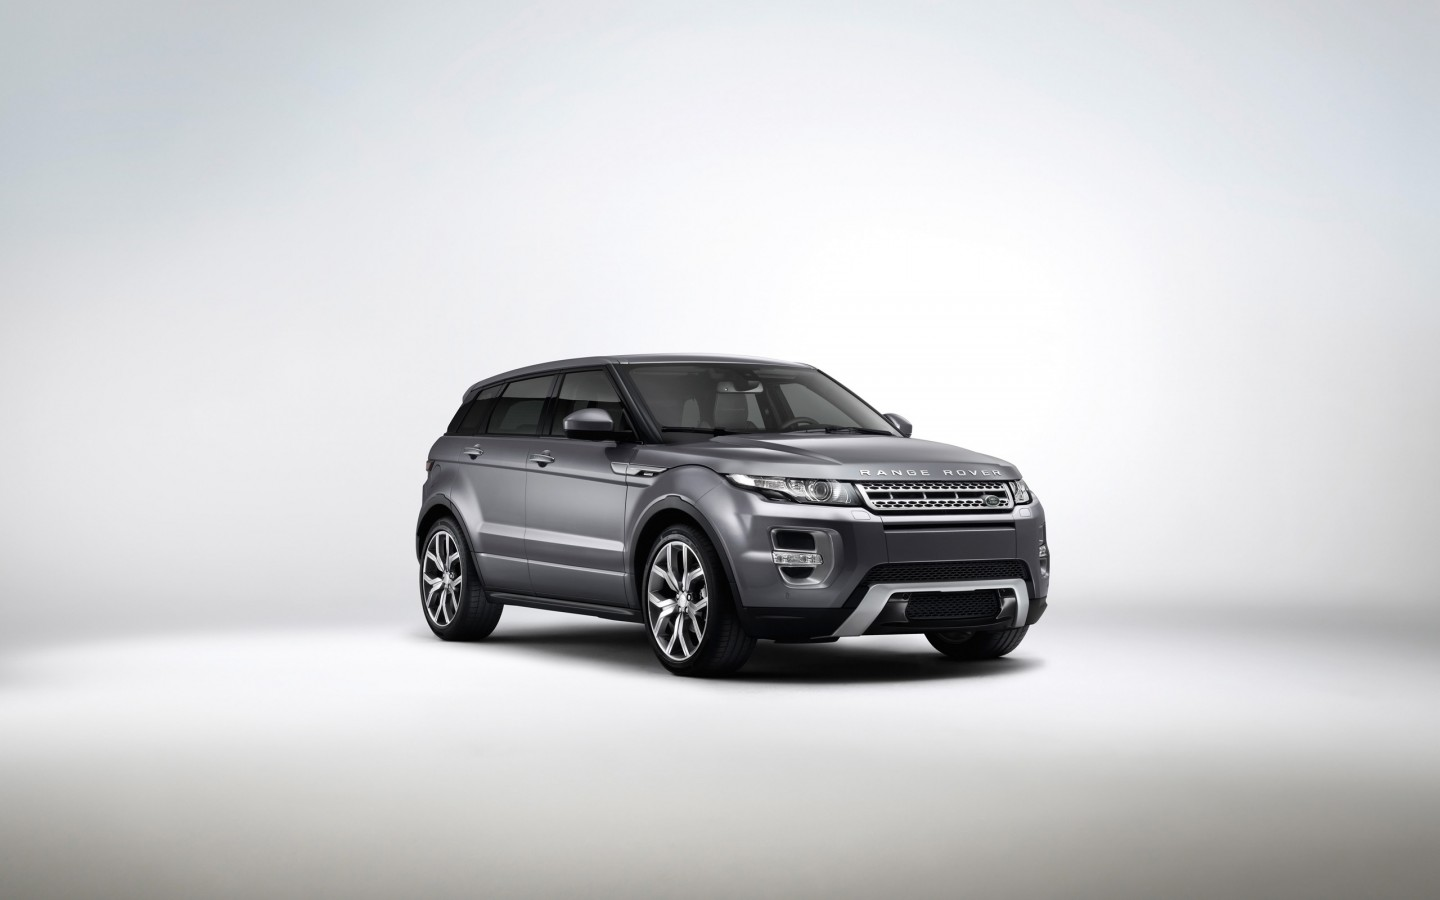 2015 range rover evoque autobiography wallpaper hd car wallpapers id 4090. Black Bedroom Furniture Sets. Home Design Ideas